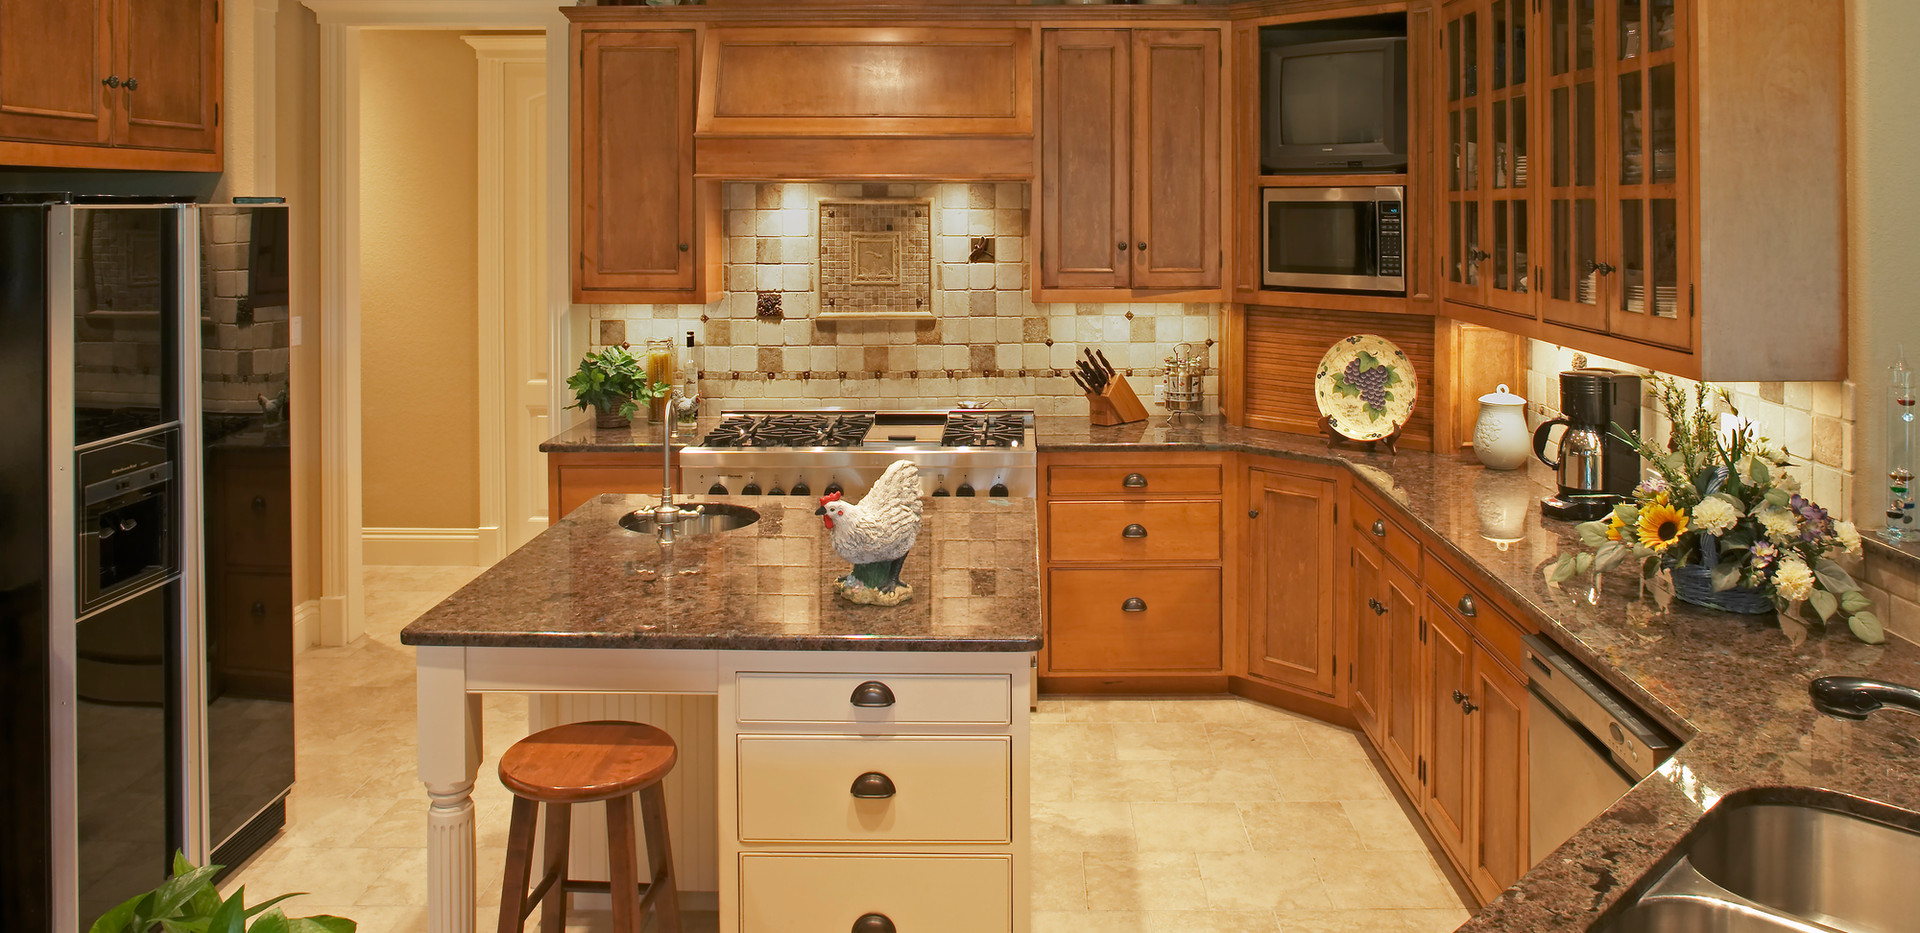 08 dearth kitchen kathleen_home.jpg